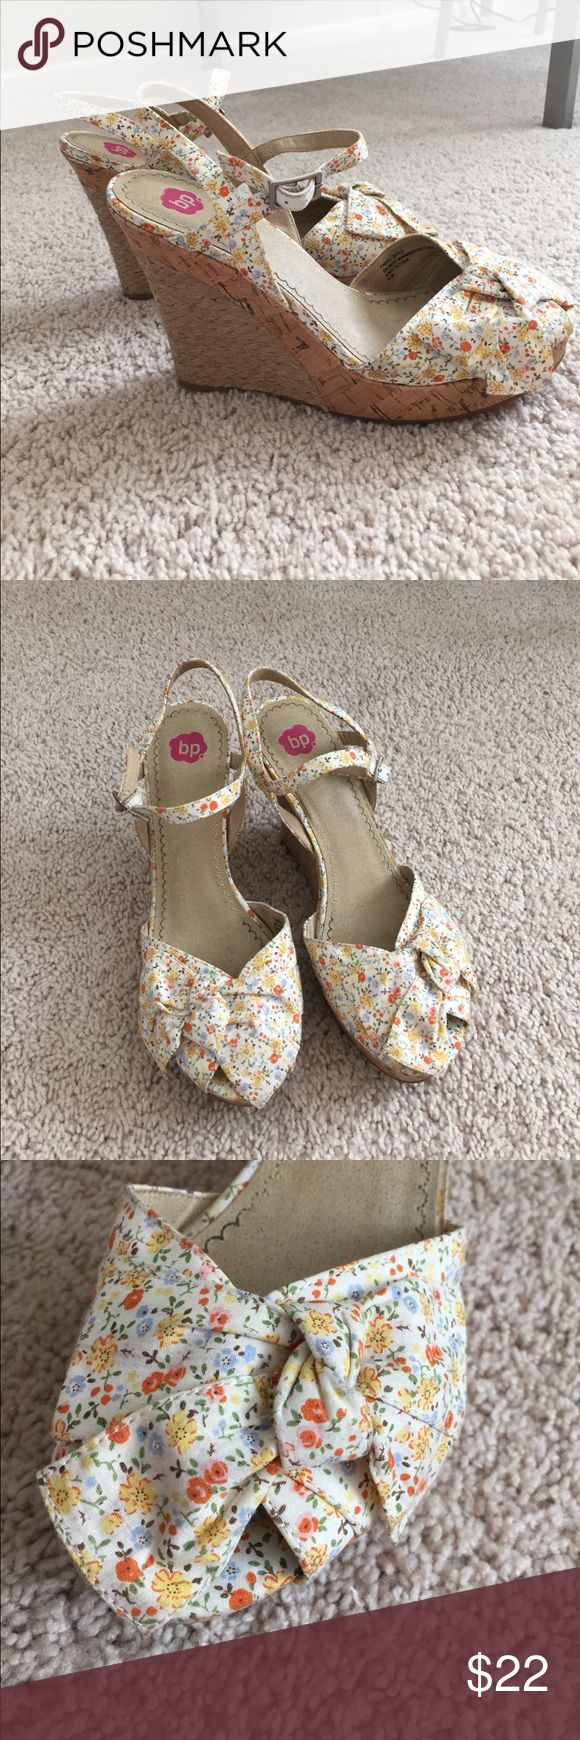 SALE!! BP Nordstrom Bow Wedges 24 HOUR SALE!! These wedges are so cute and comfy! The bow is subtle but really adds some cutesy feels. They have been worn lightly. Comment w/ questions! Nordstrom Shoes Wedges